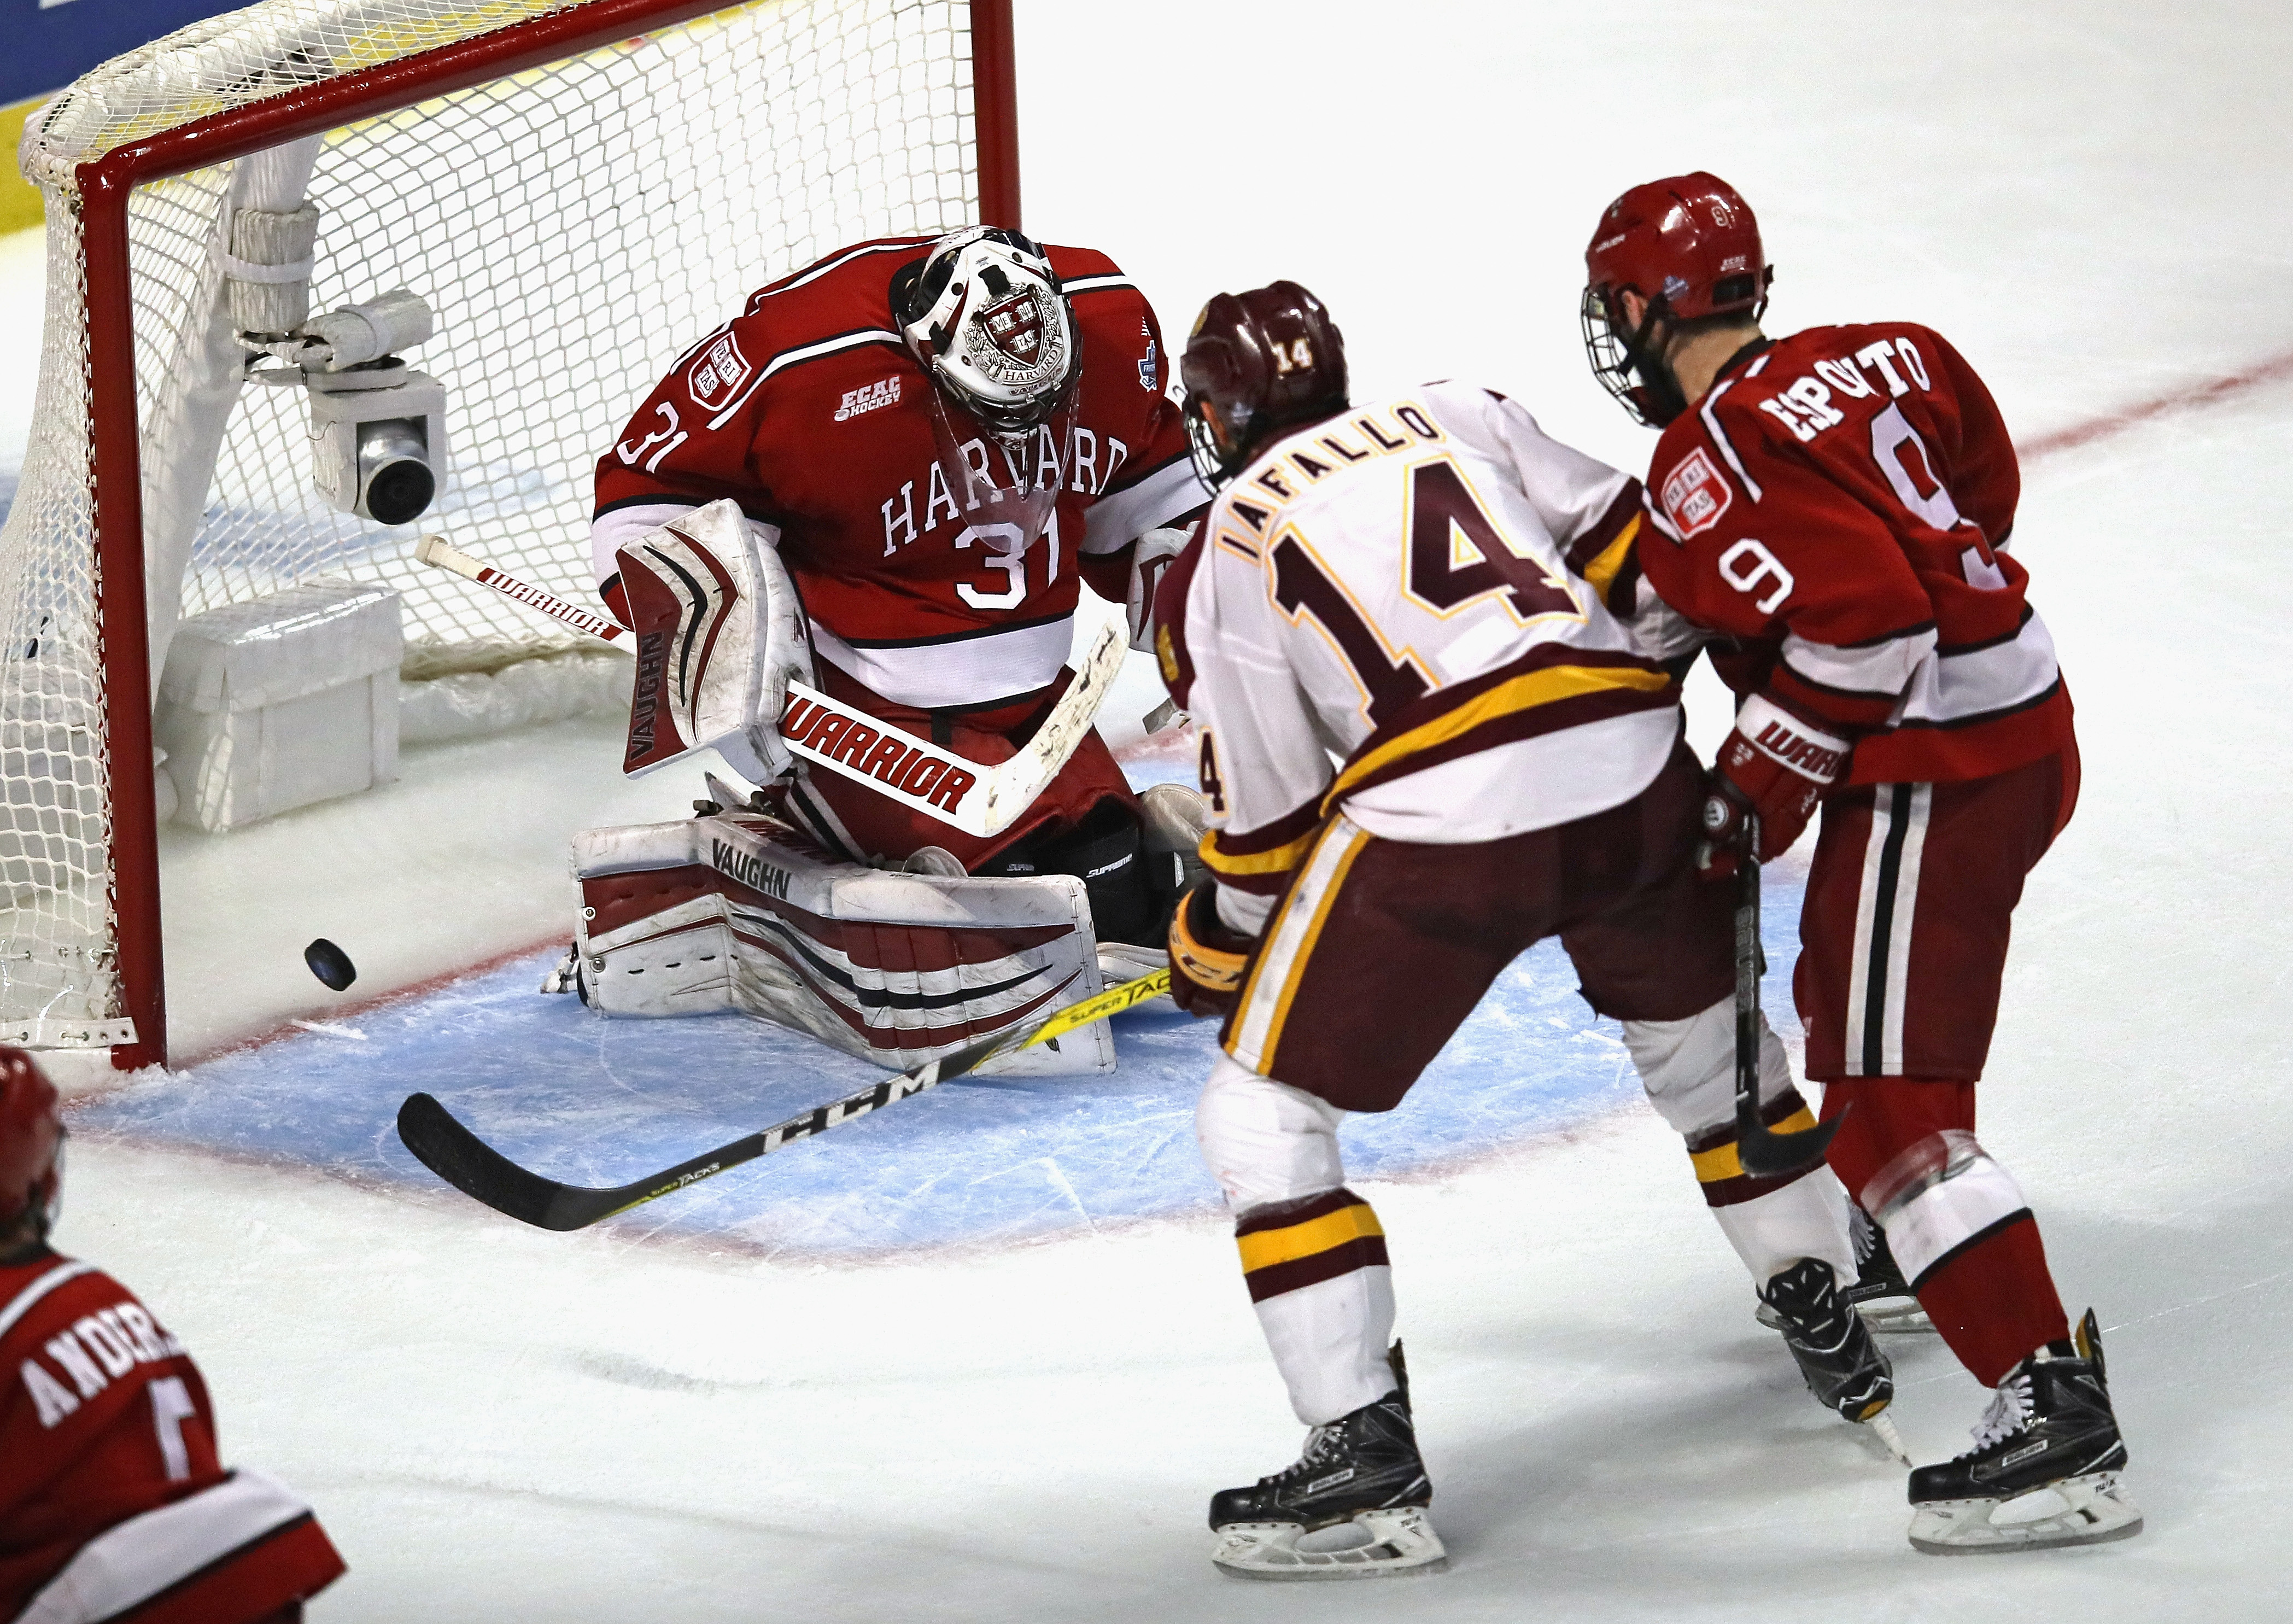 Eden native Alex Iafallo of Minnesota Duluth scores the game-winning goal with 26.6 seconds left against Harvard's Merrick Madsen at United Center in Chicago in a NCAA semifinal contest. (Getty Images)